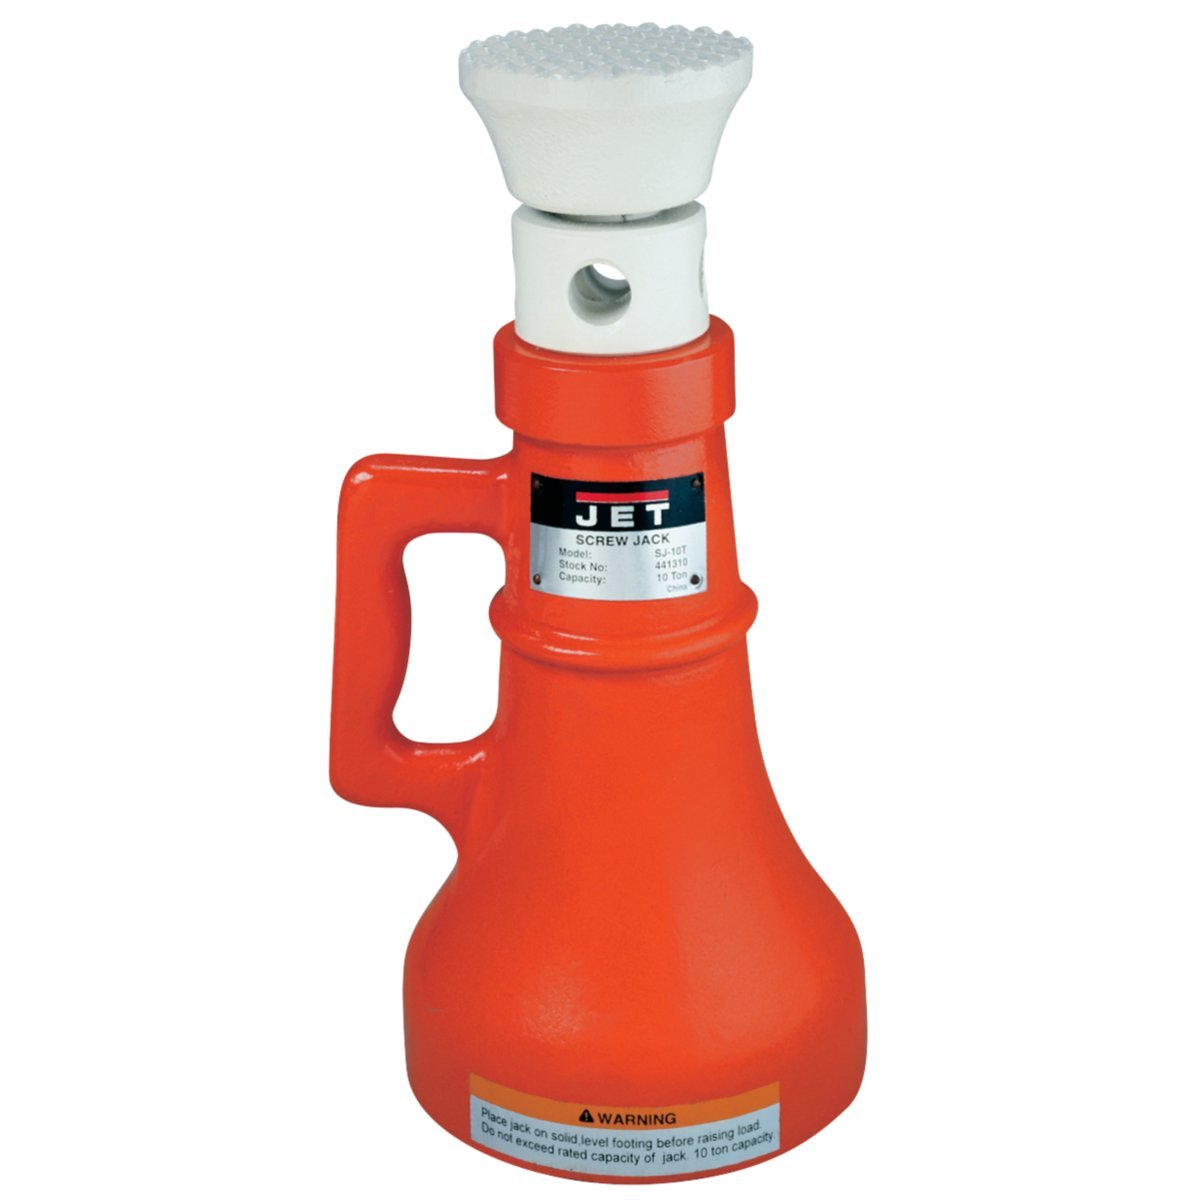 JET SJ-10T 10-Ton Screw Jack by Jet